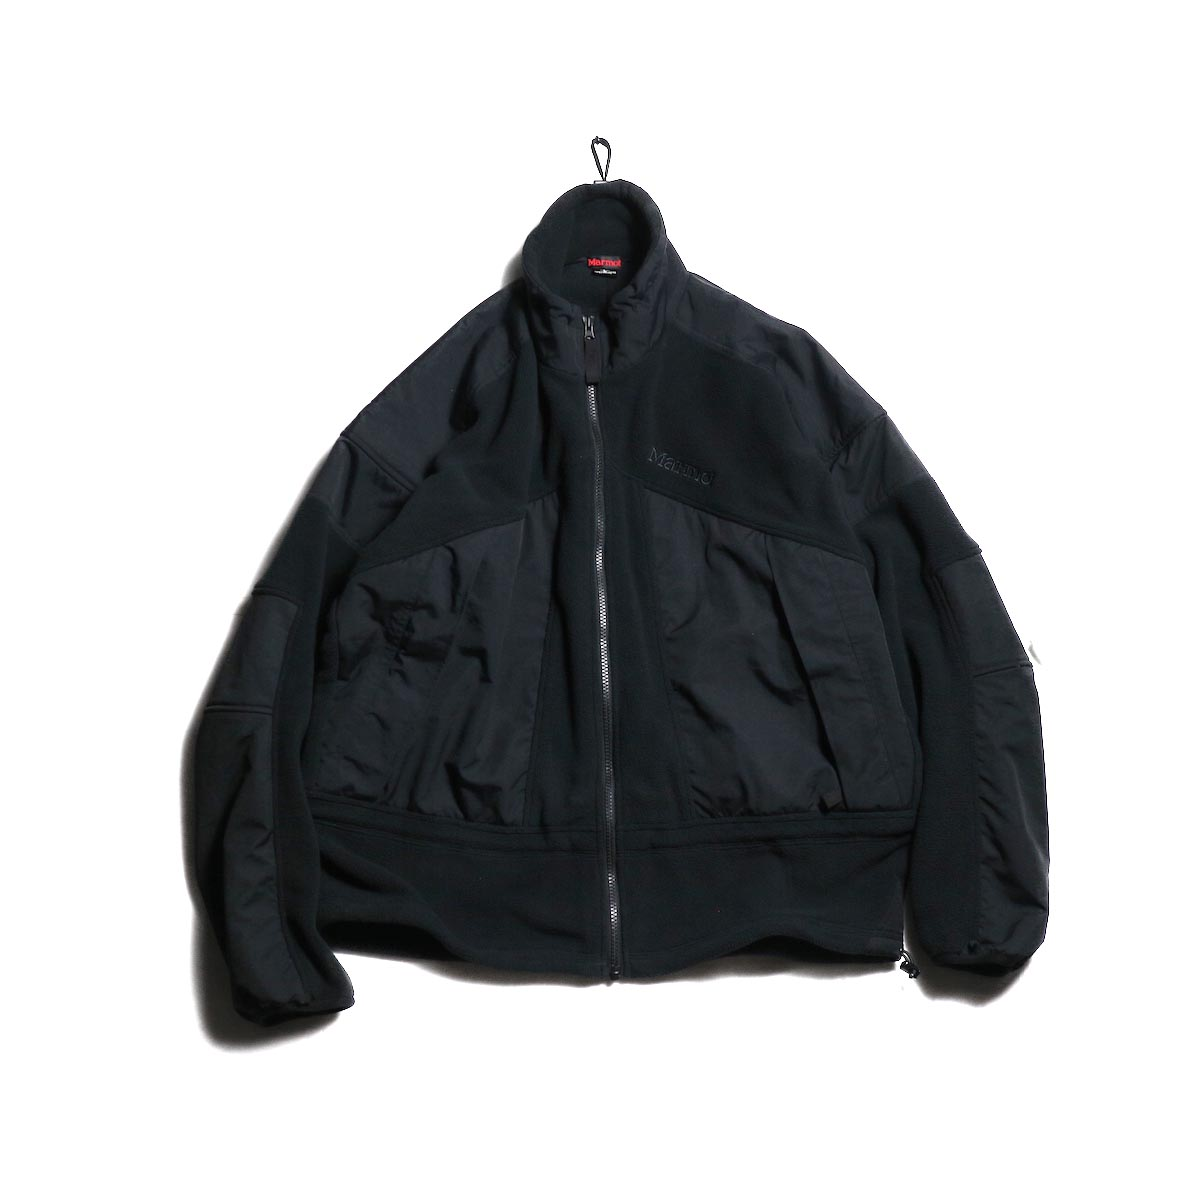 Marmot Histric Collection / Alpinist Tech Sweater (Black×Black)